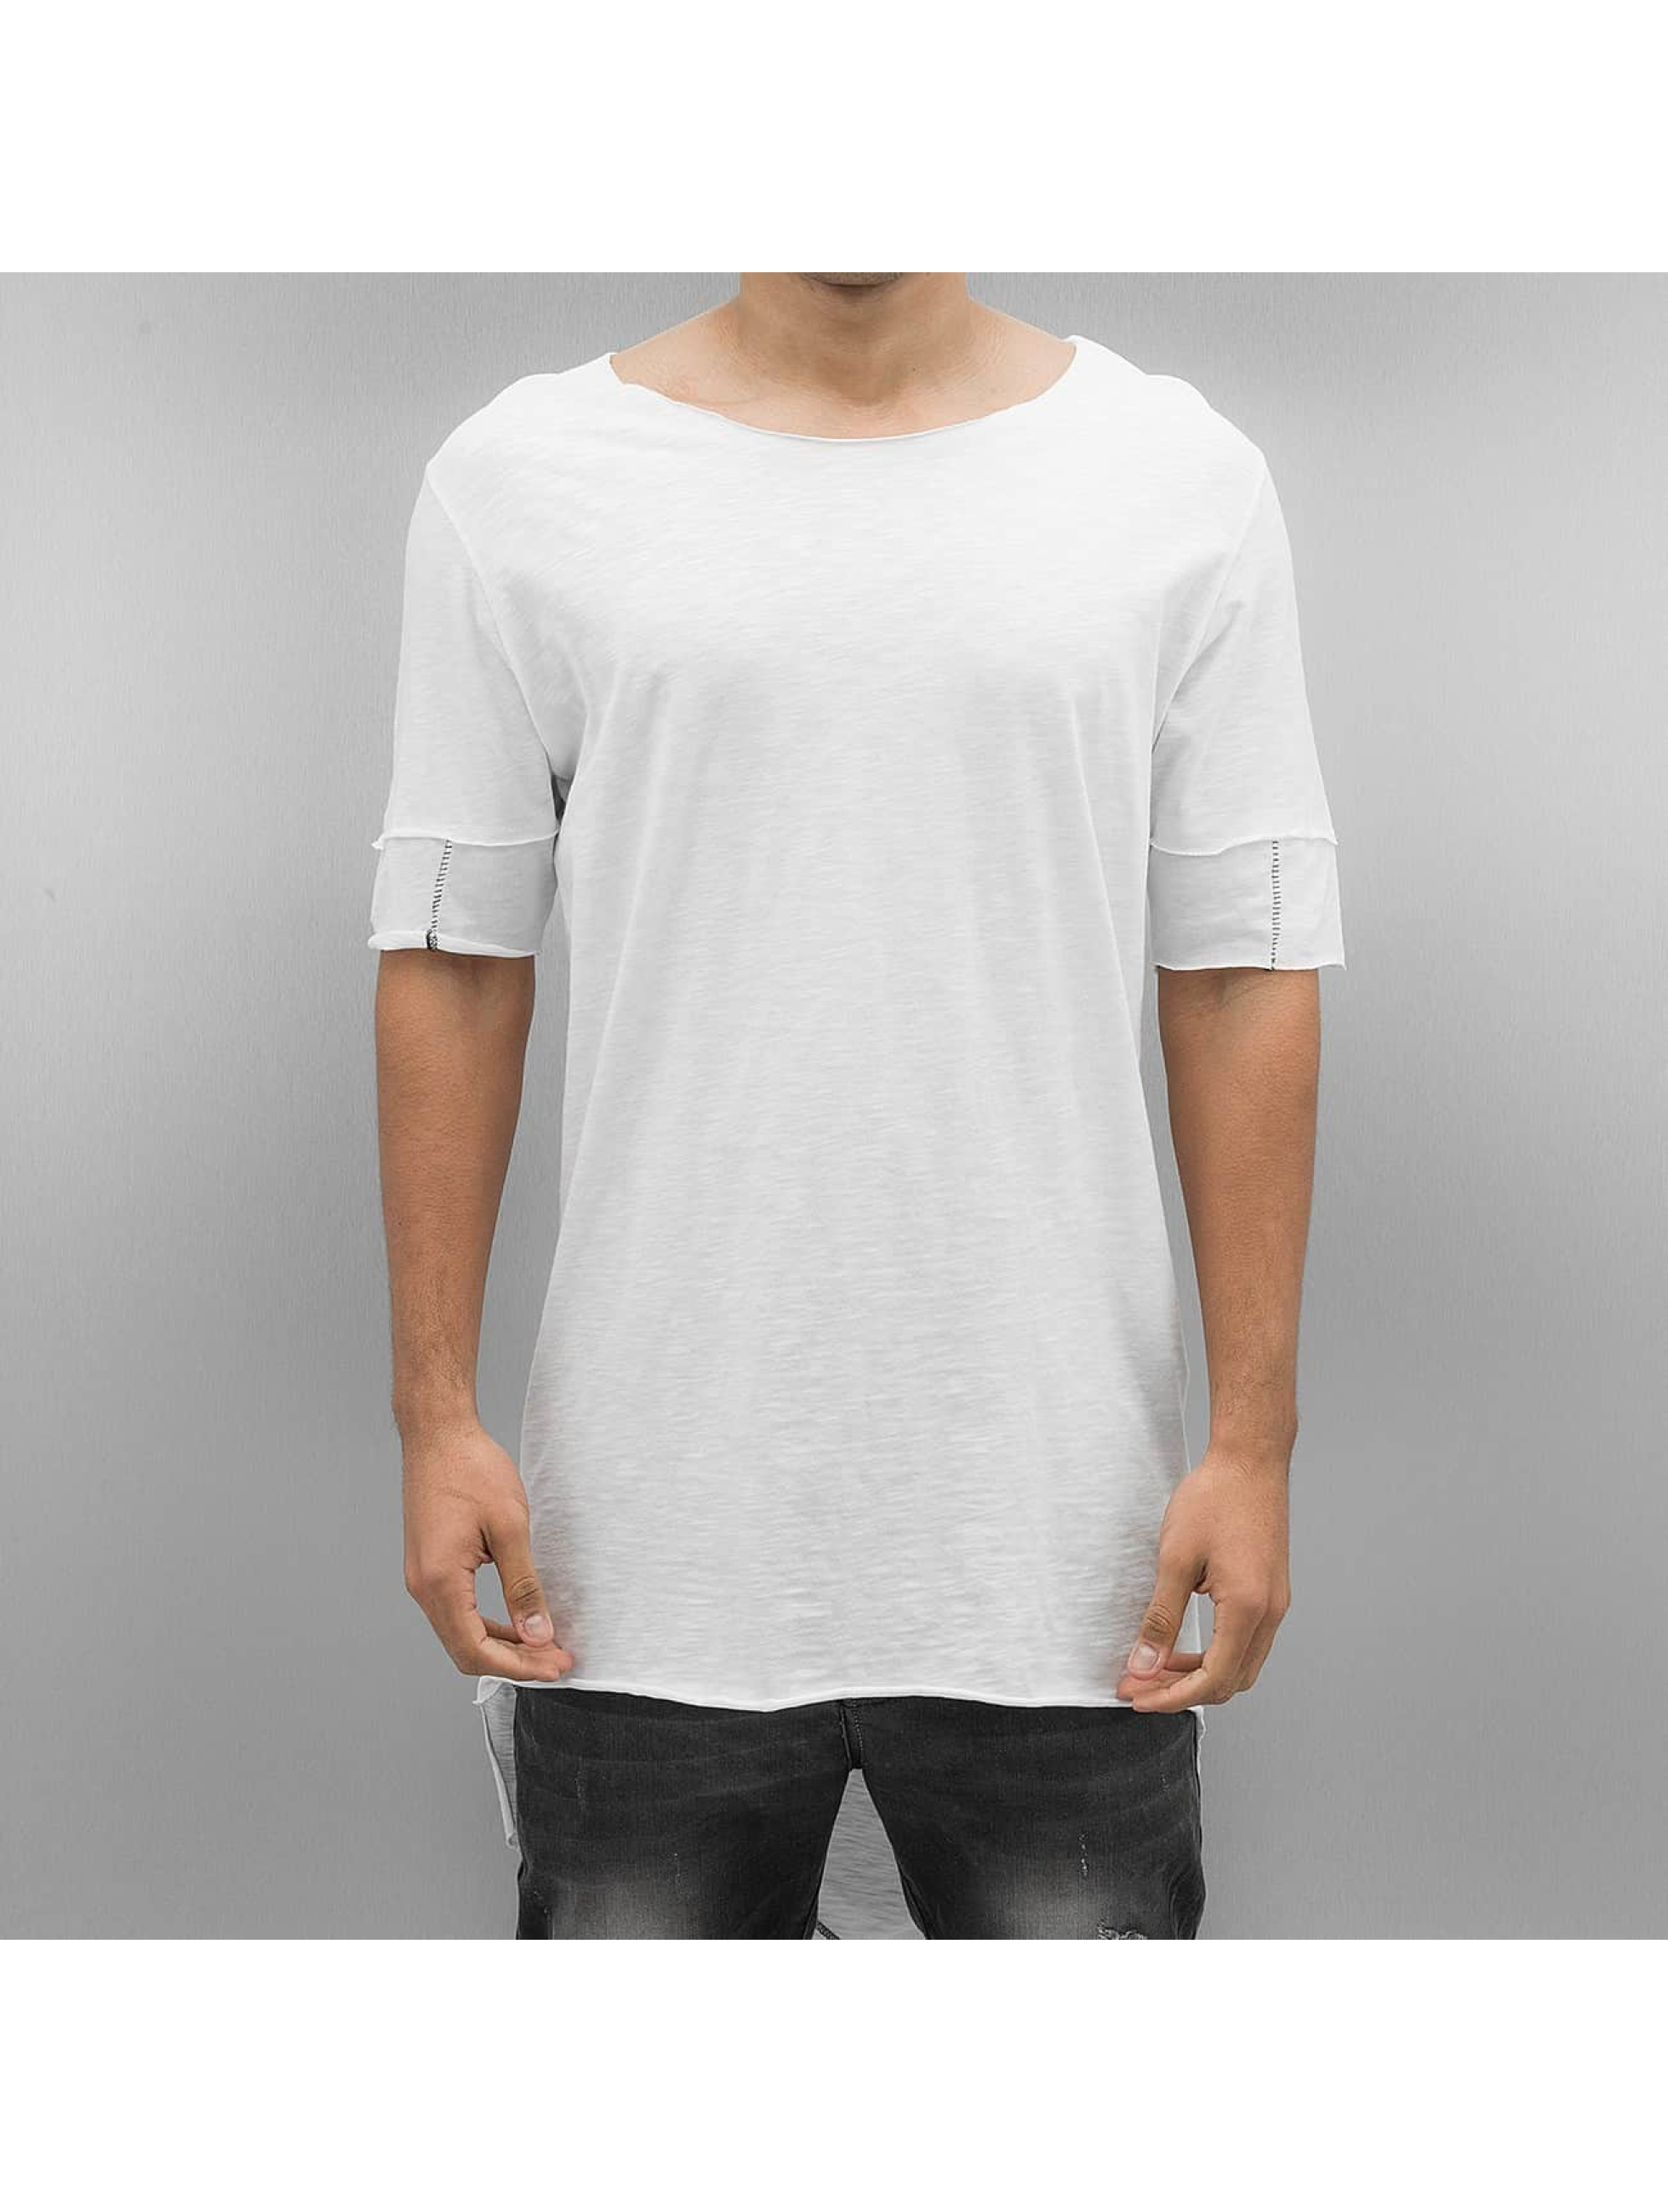 2Y T-Shirt Wichita white